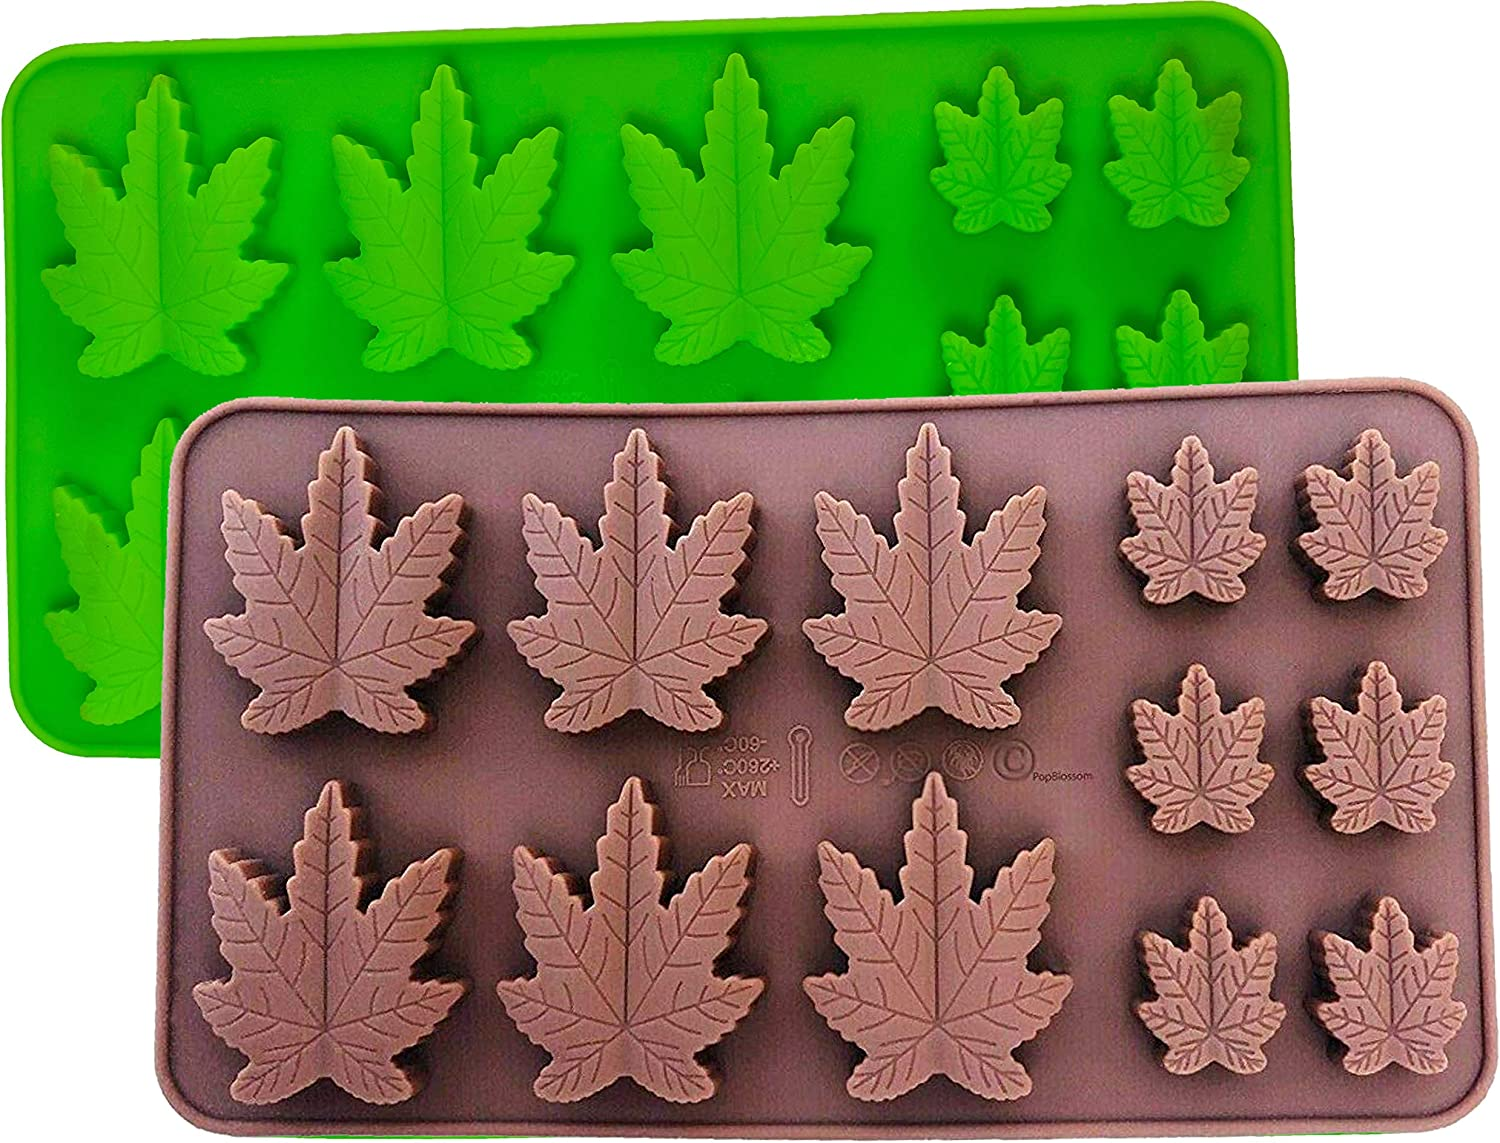 Set of 2 X Silicone Marijuana Lollipop Gummy Brownies Had Candy Cannabis Weed Edible Leaf Mold Ice Cube Chocolate Soap Candle Tray Party Maker (Green + Brown)